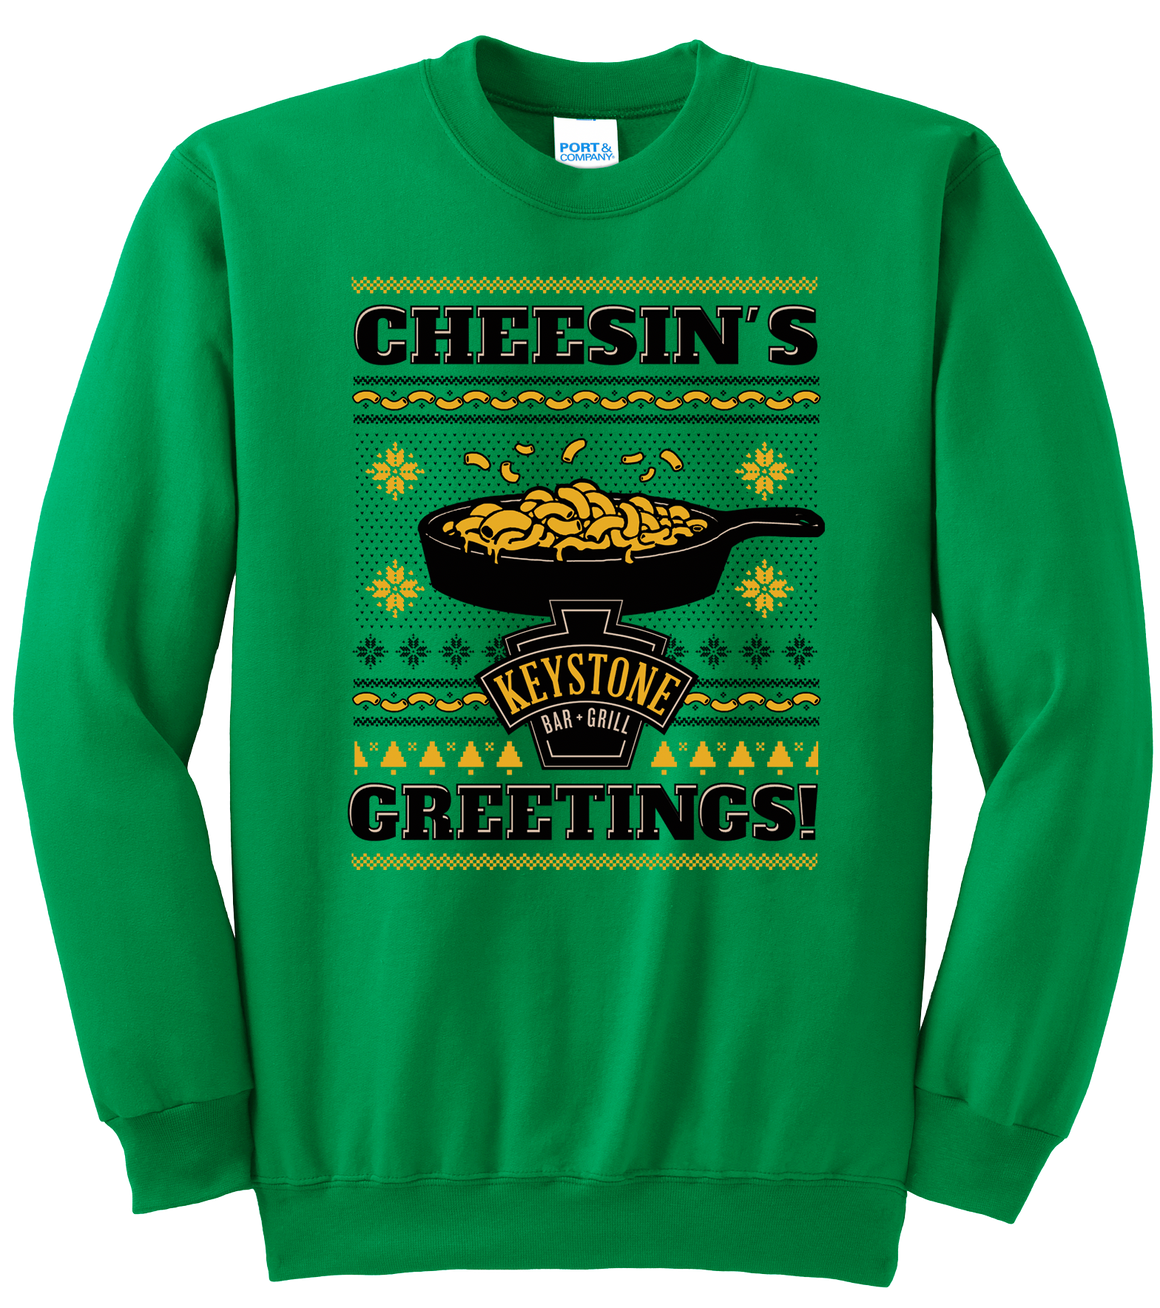 Keystone Bar + Grill Cheesin's Greetings - Cincy Shirts